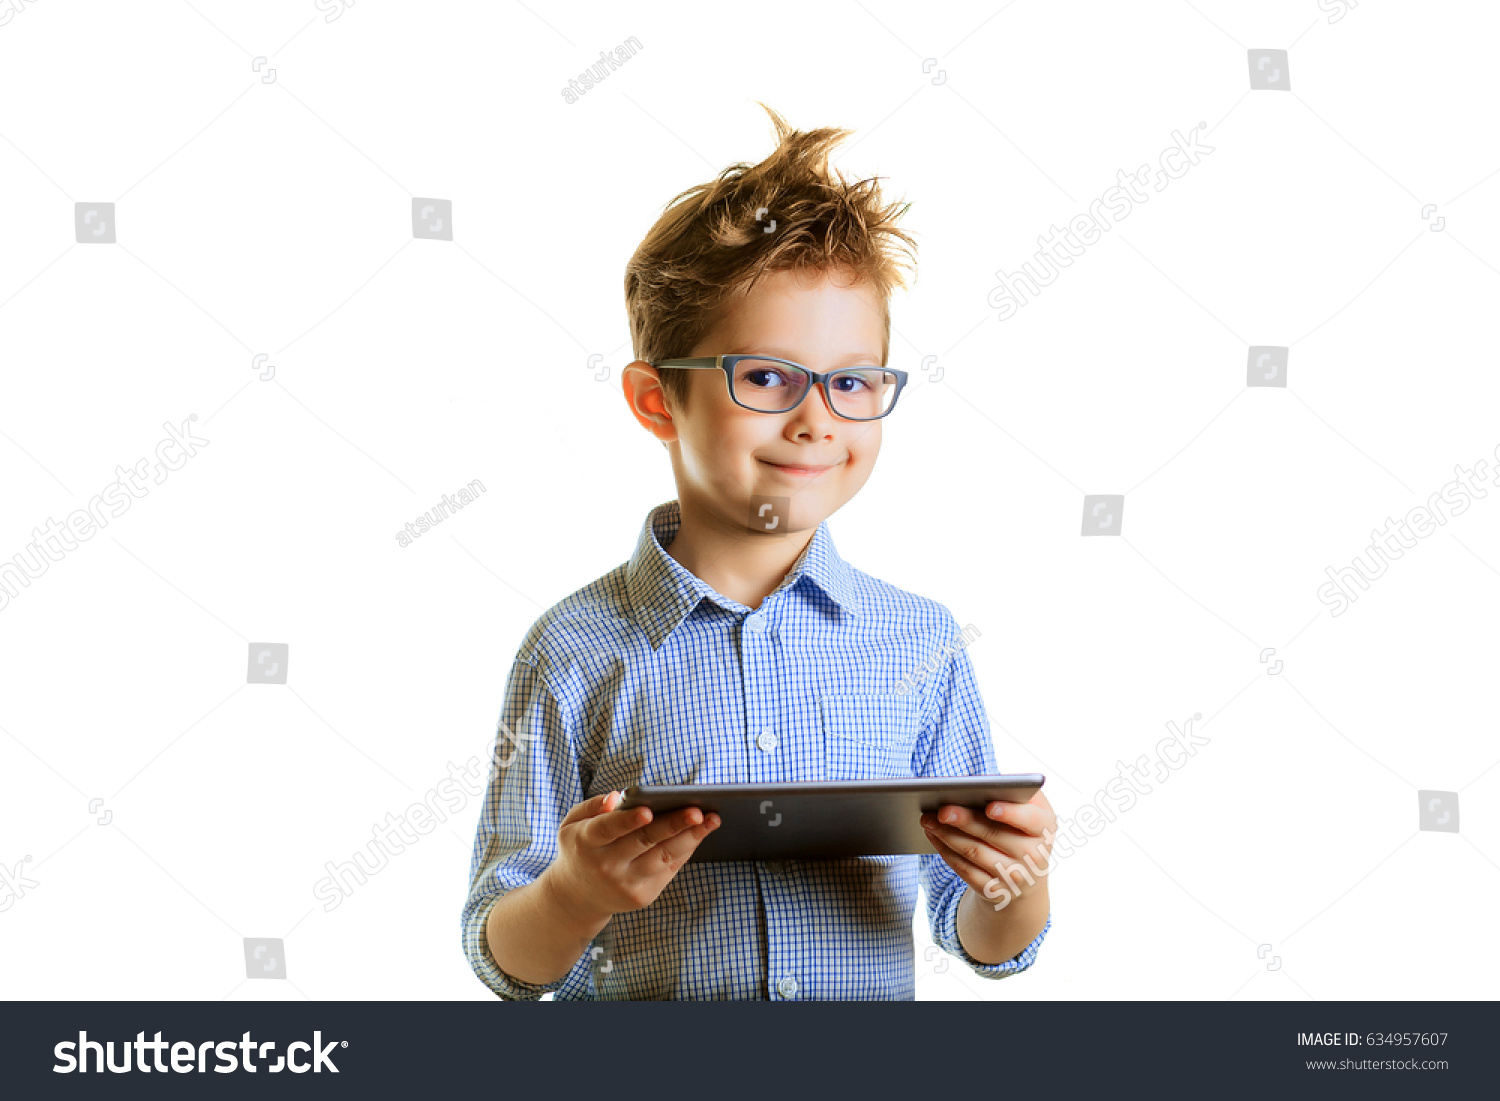 Portrait of a cute smiling boy using a tablet computer against a white background. Child in glasses with a laptop, isolated. Smart kid tells us about science.